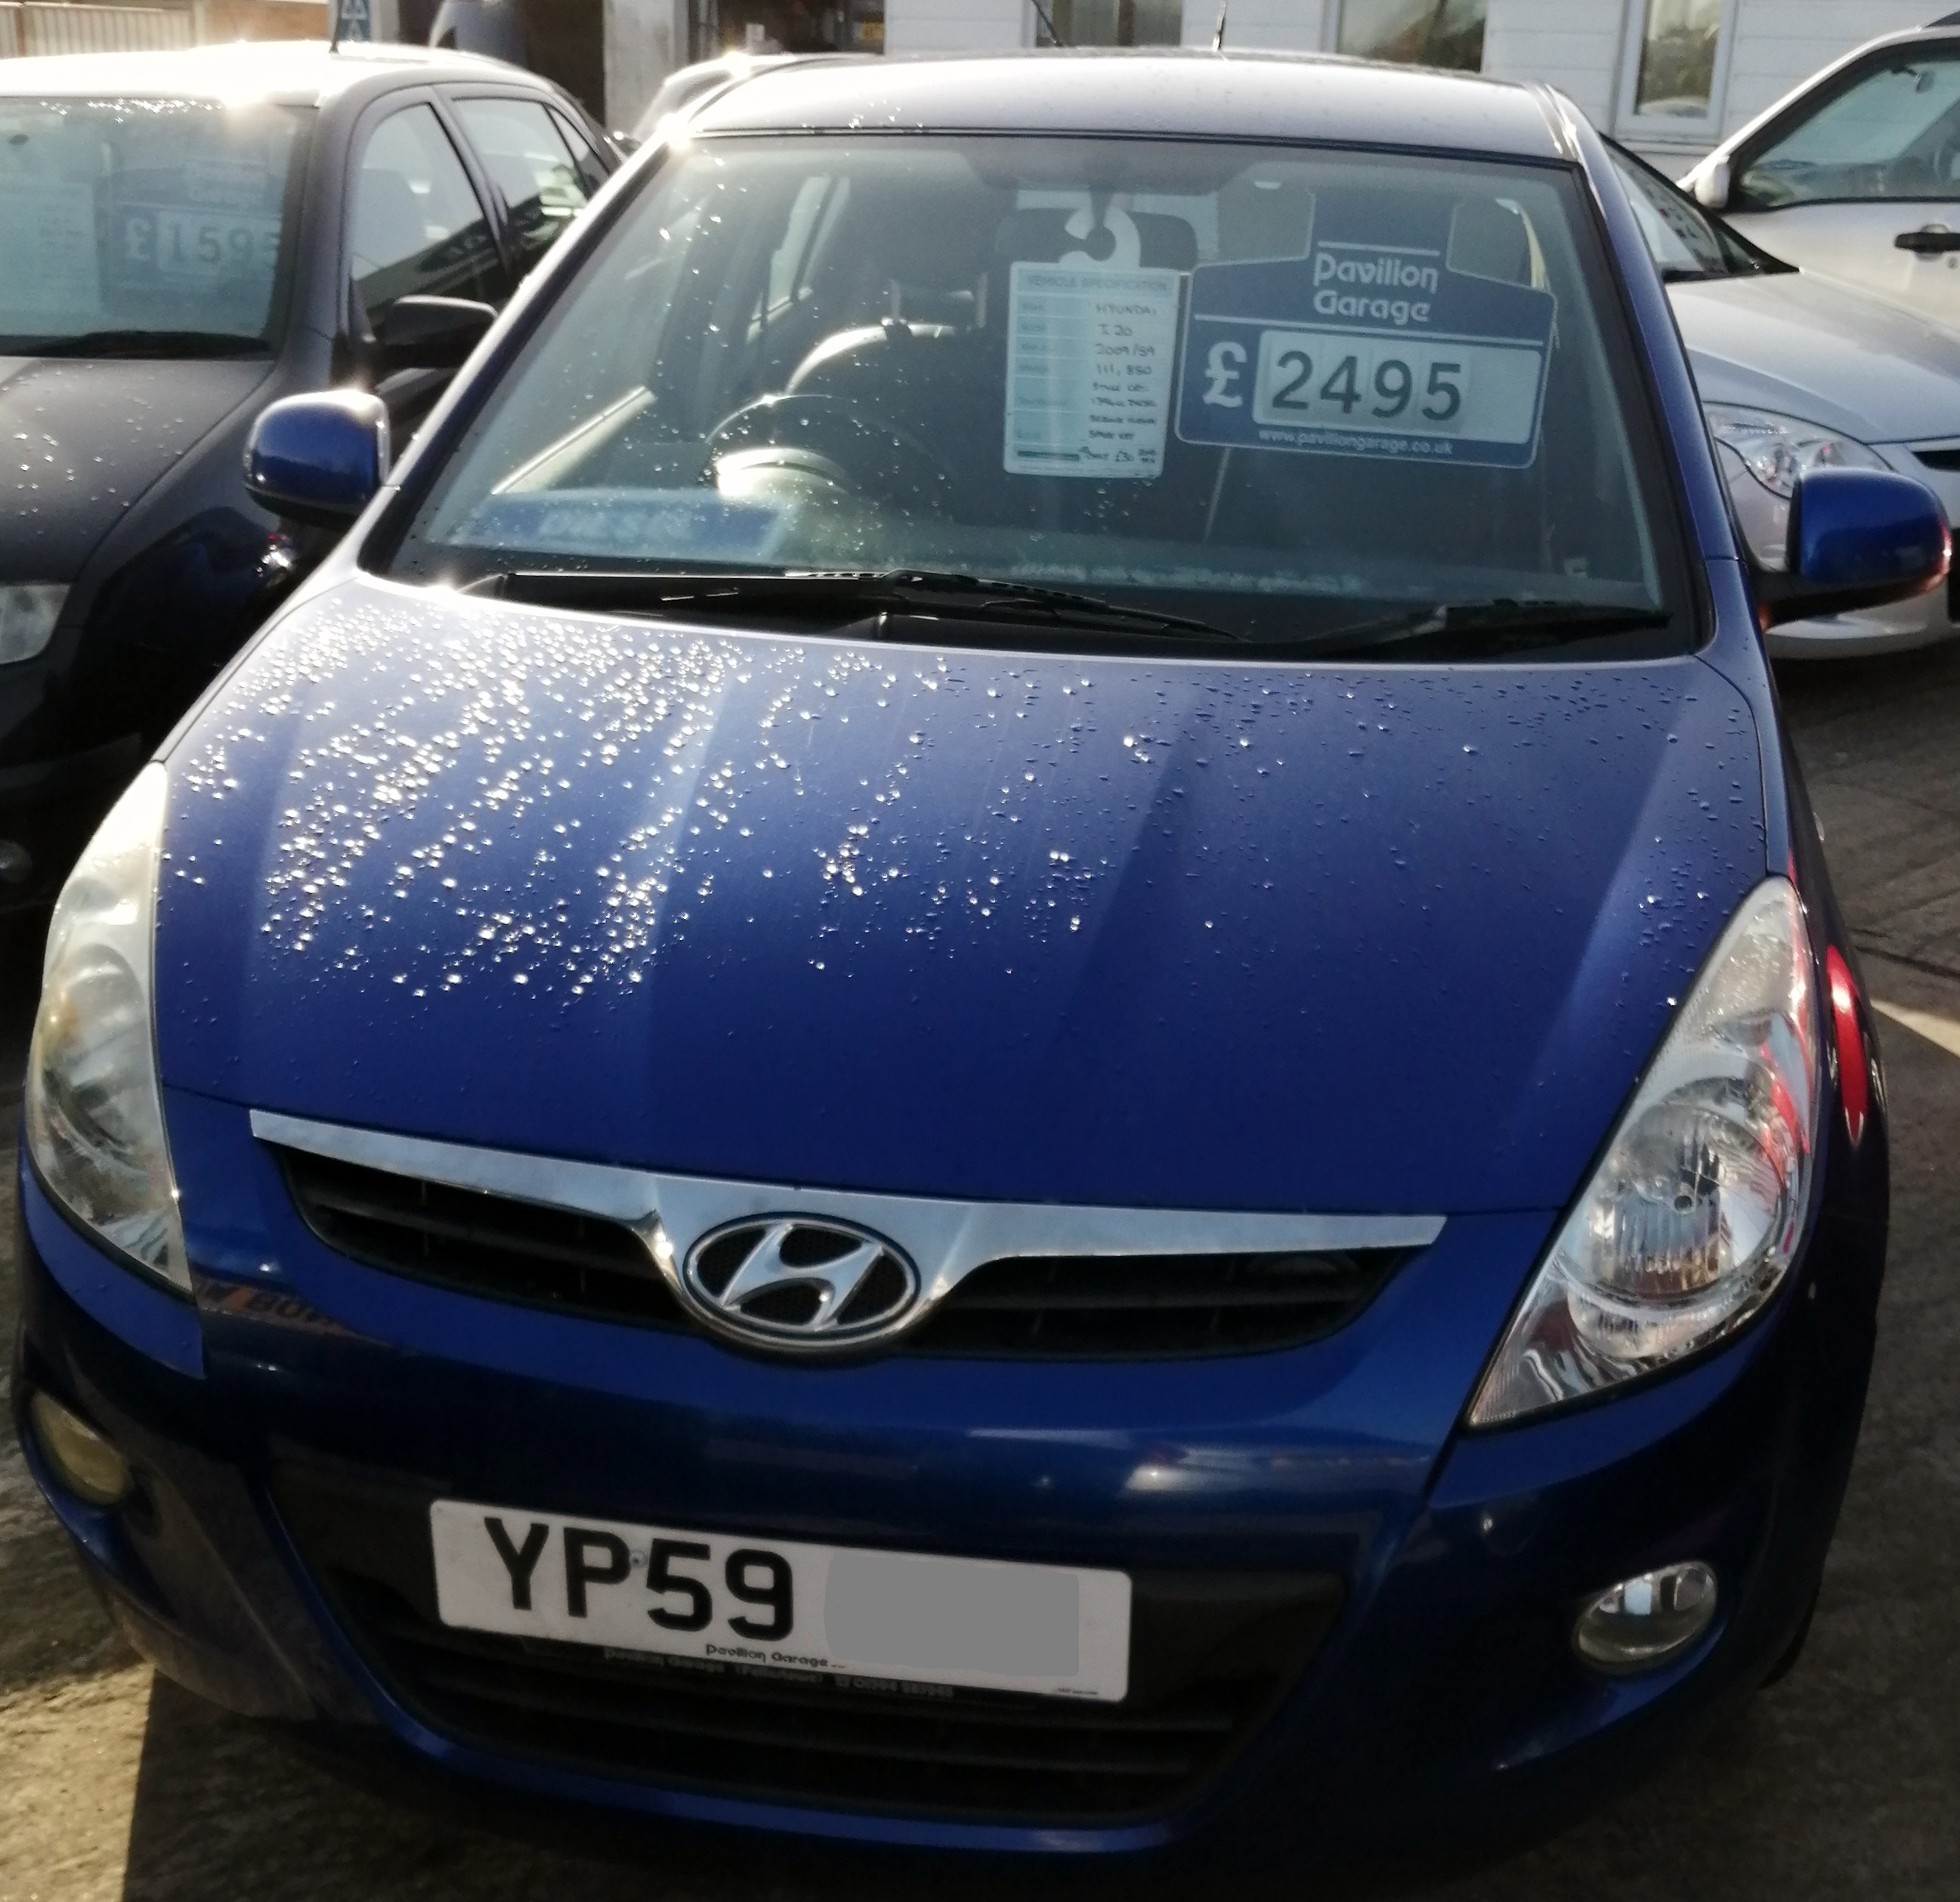 Hyundai I20 Style CRDI 1396cc - Diesel 2009/59 111,850 Miles Service History Spare Key *** ONLY £30 per year Road Tax*** £2495